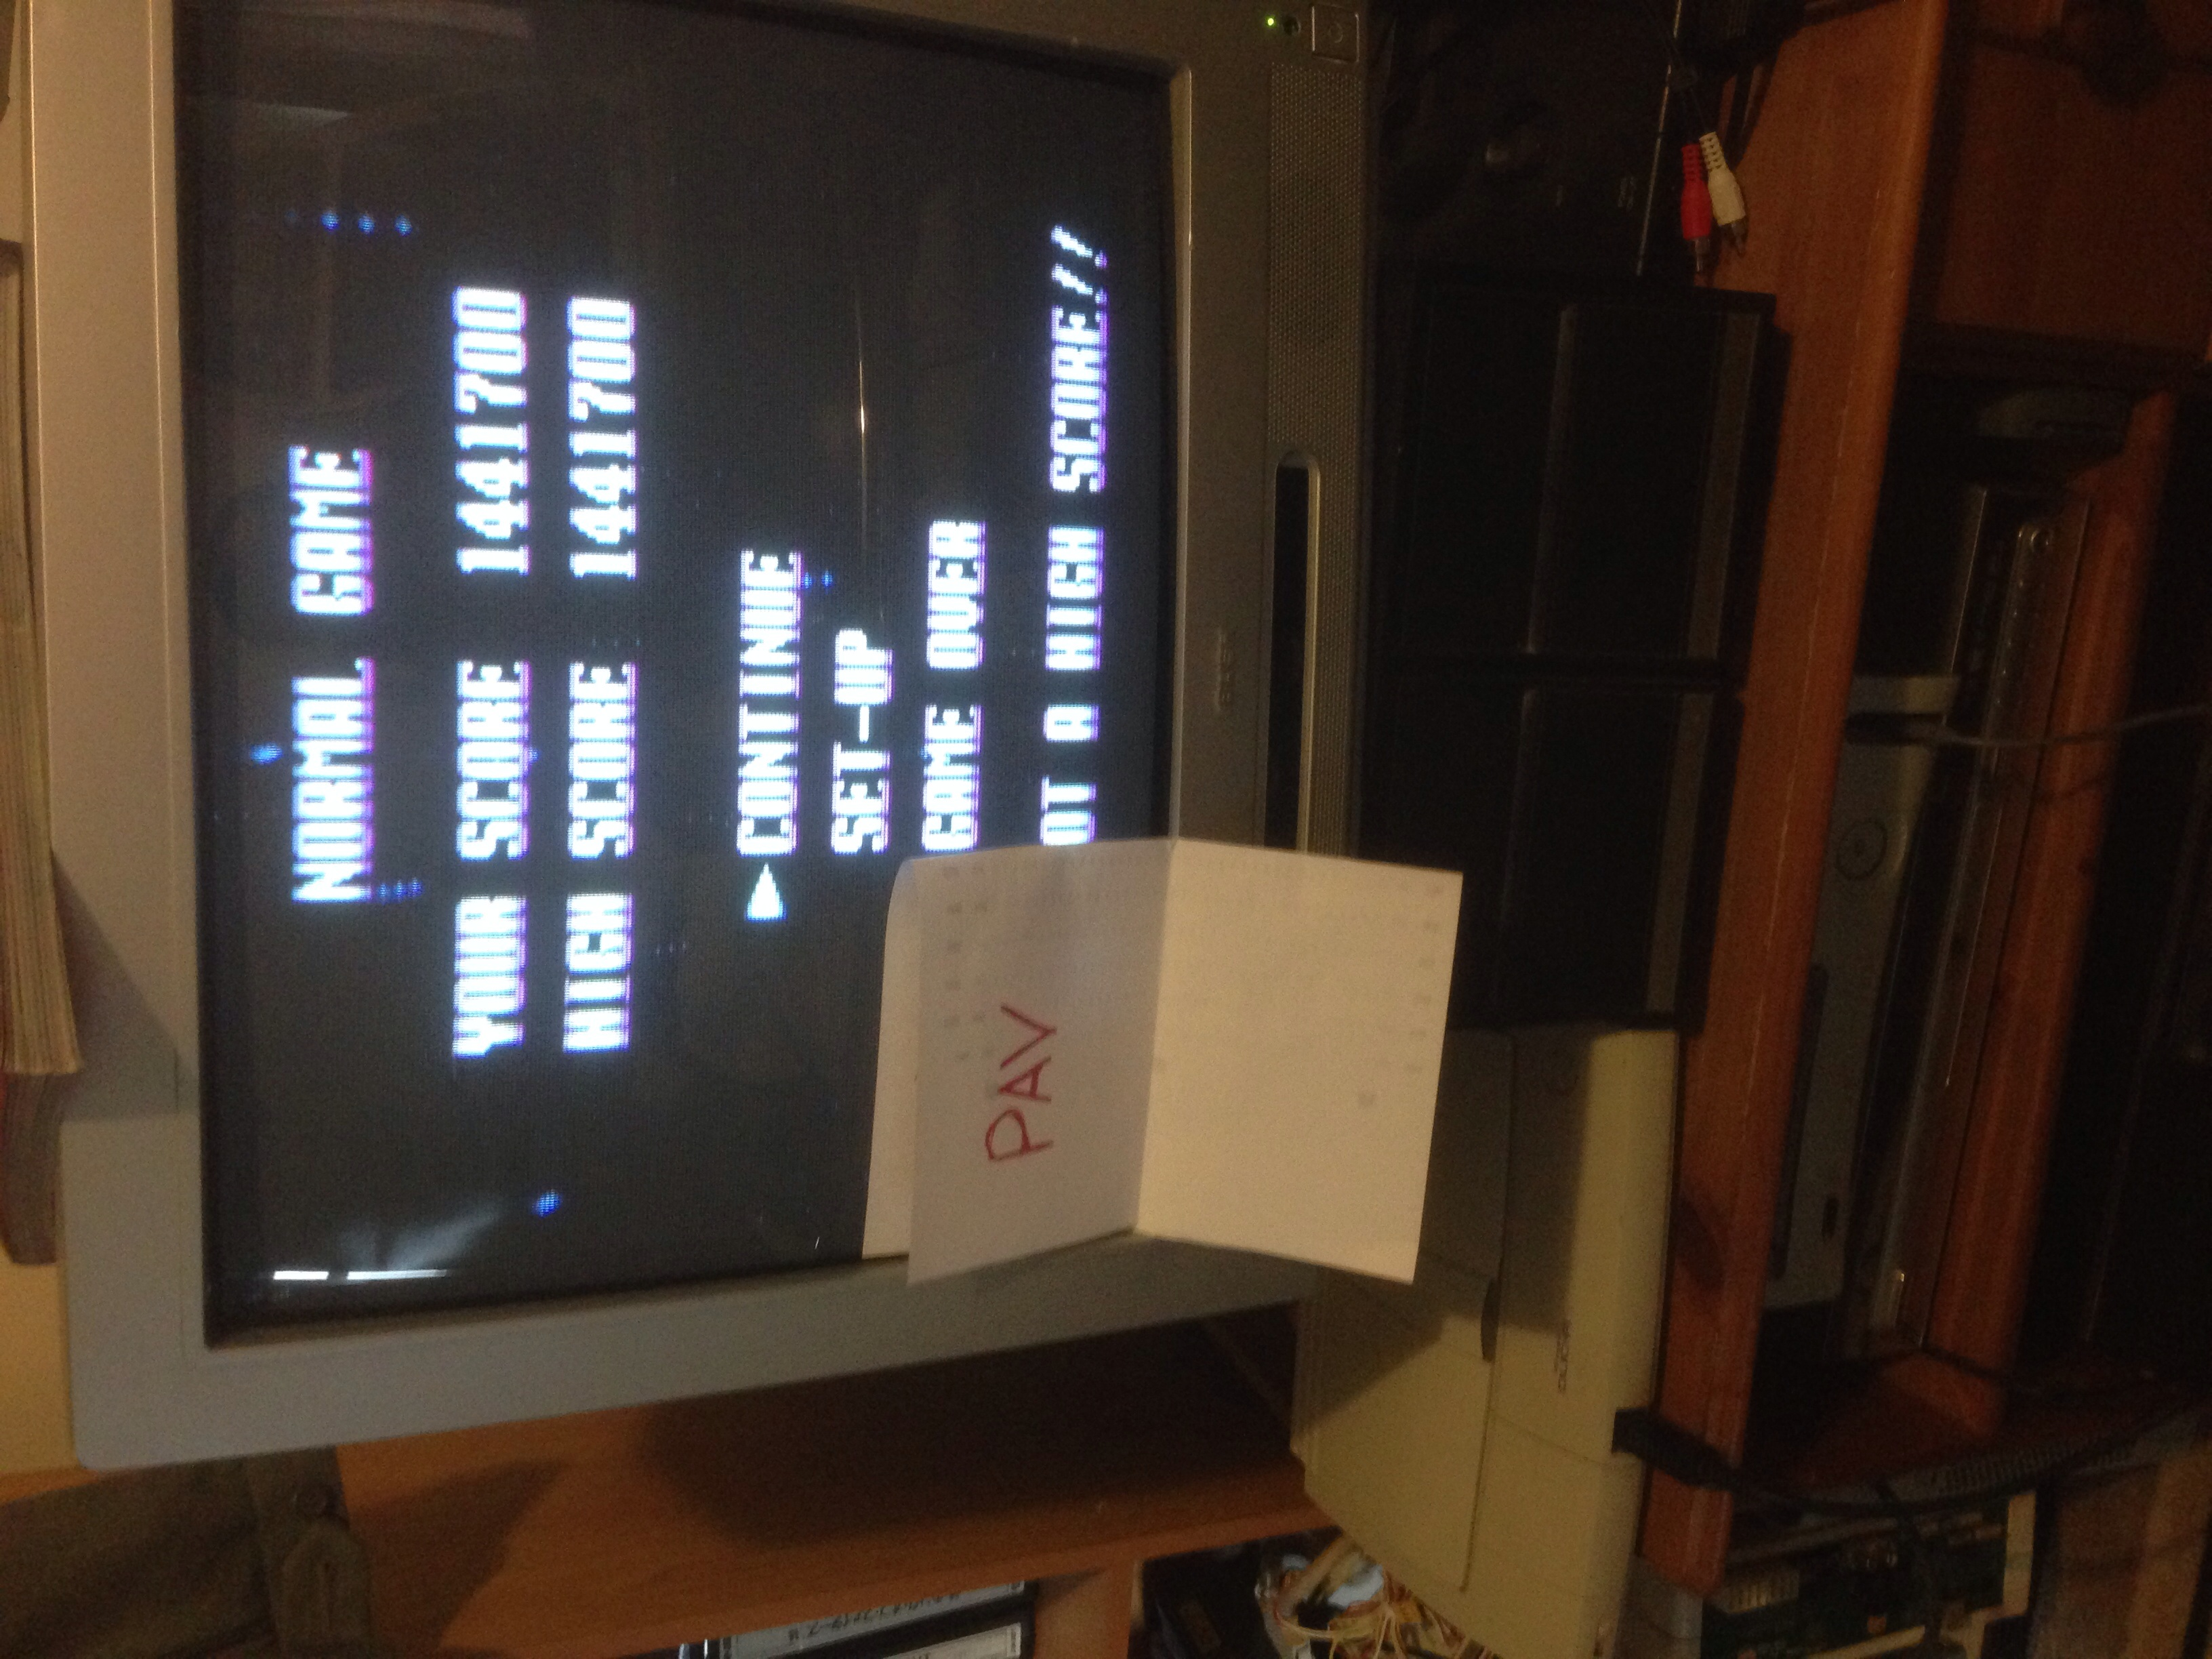 phillv85: Final Soldier (TurboGrafx-16/PC Engine) 1,441,700 points on 2015-04-22 11:38:27